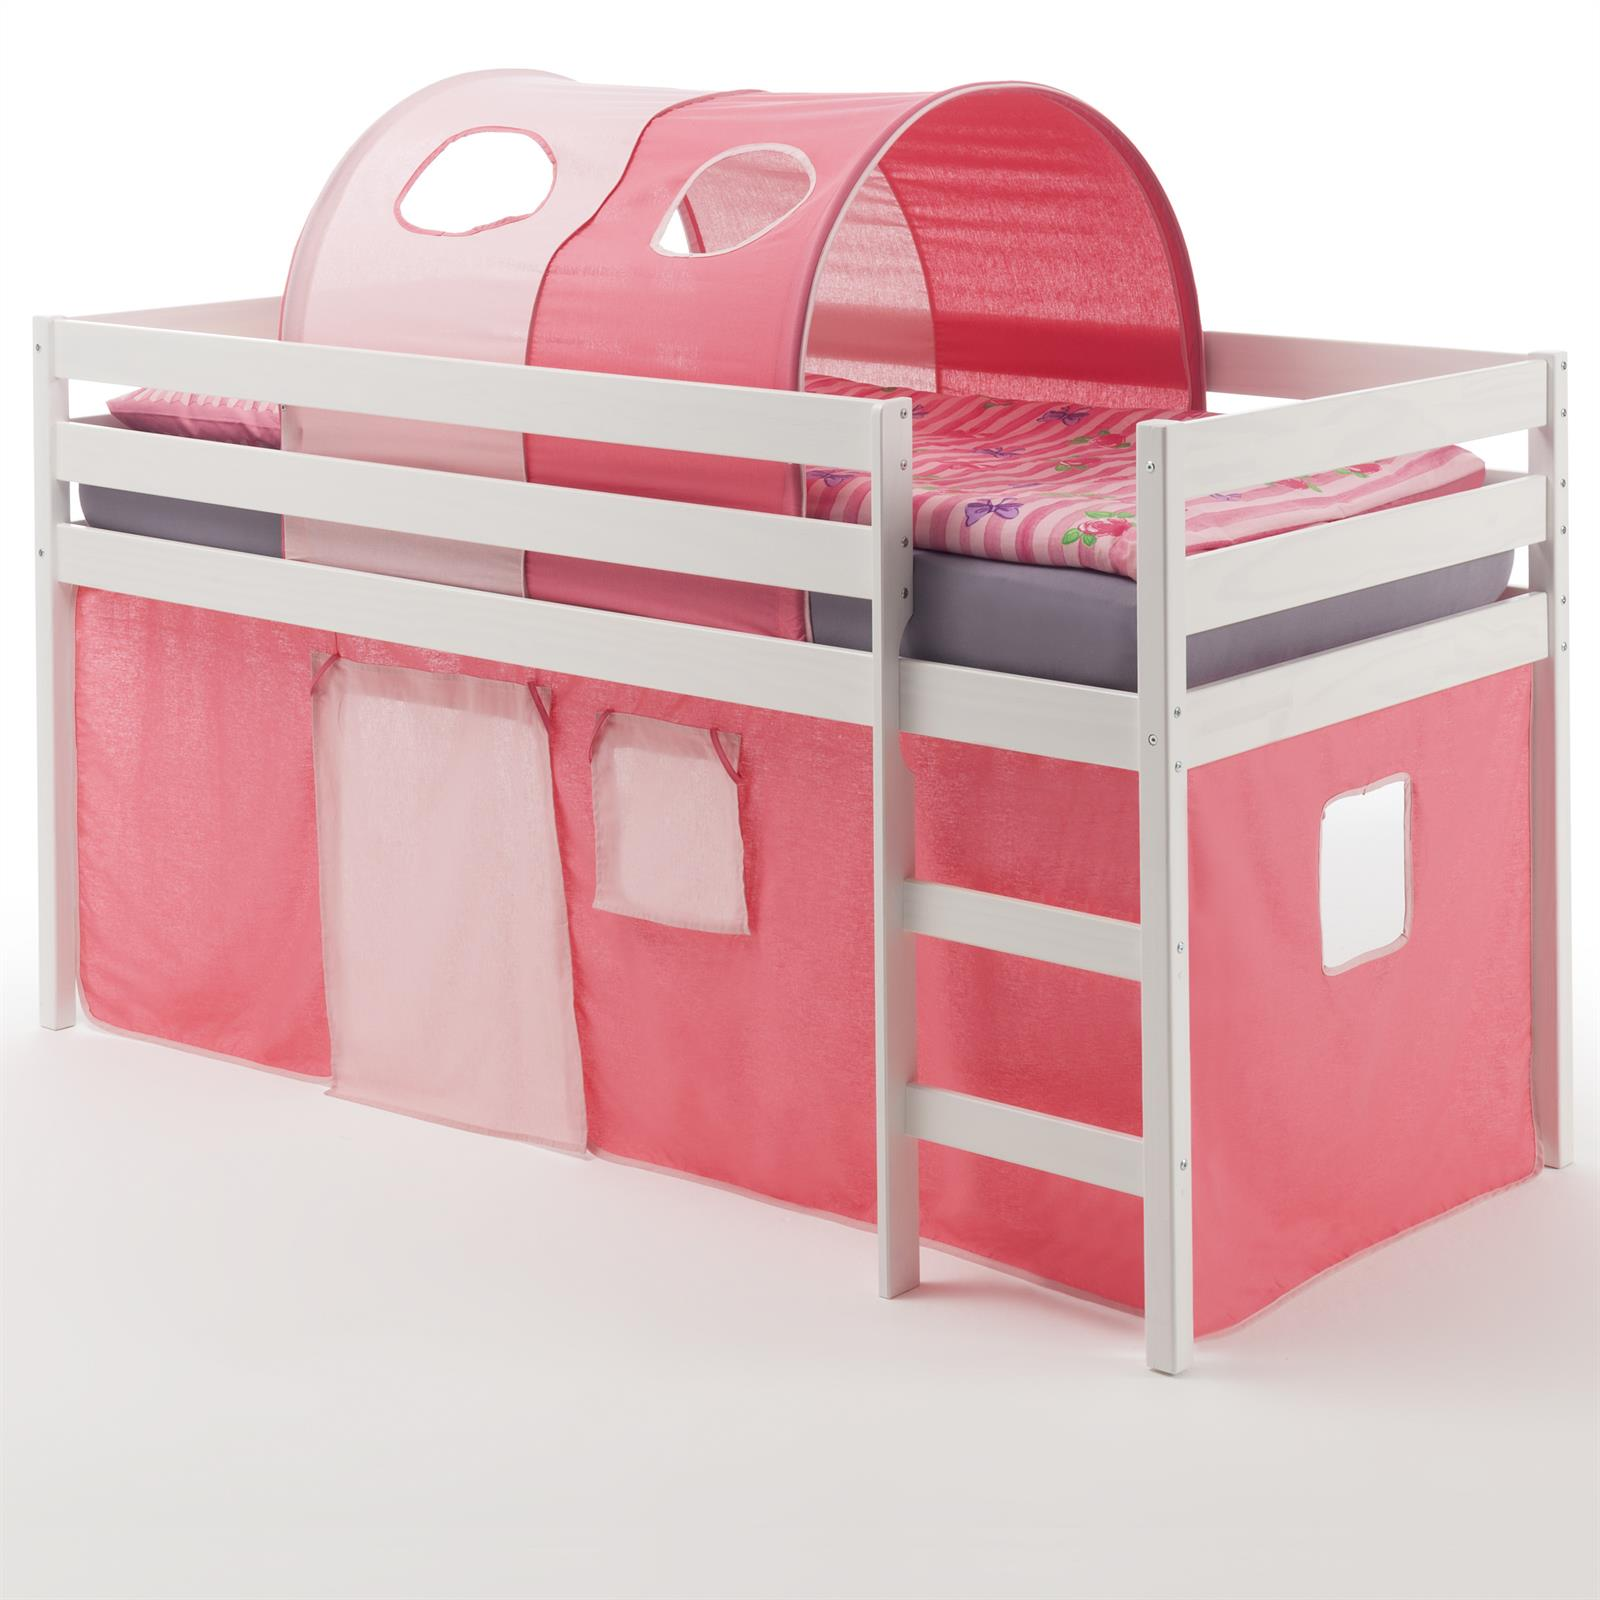 hochbett erik vorhang tunnel pink rosa mobilia24. Black Bedroom Furniture Sets. Home Design Ideas